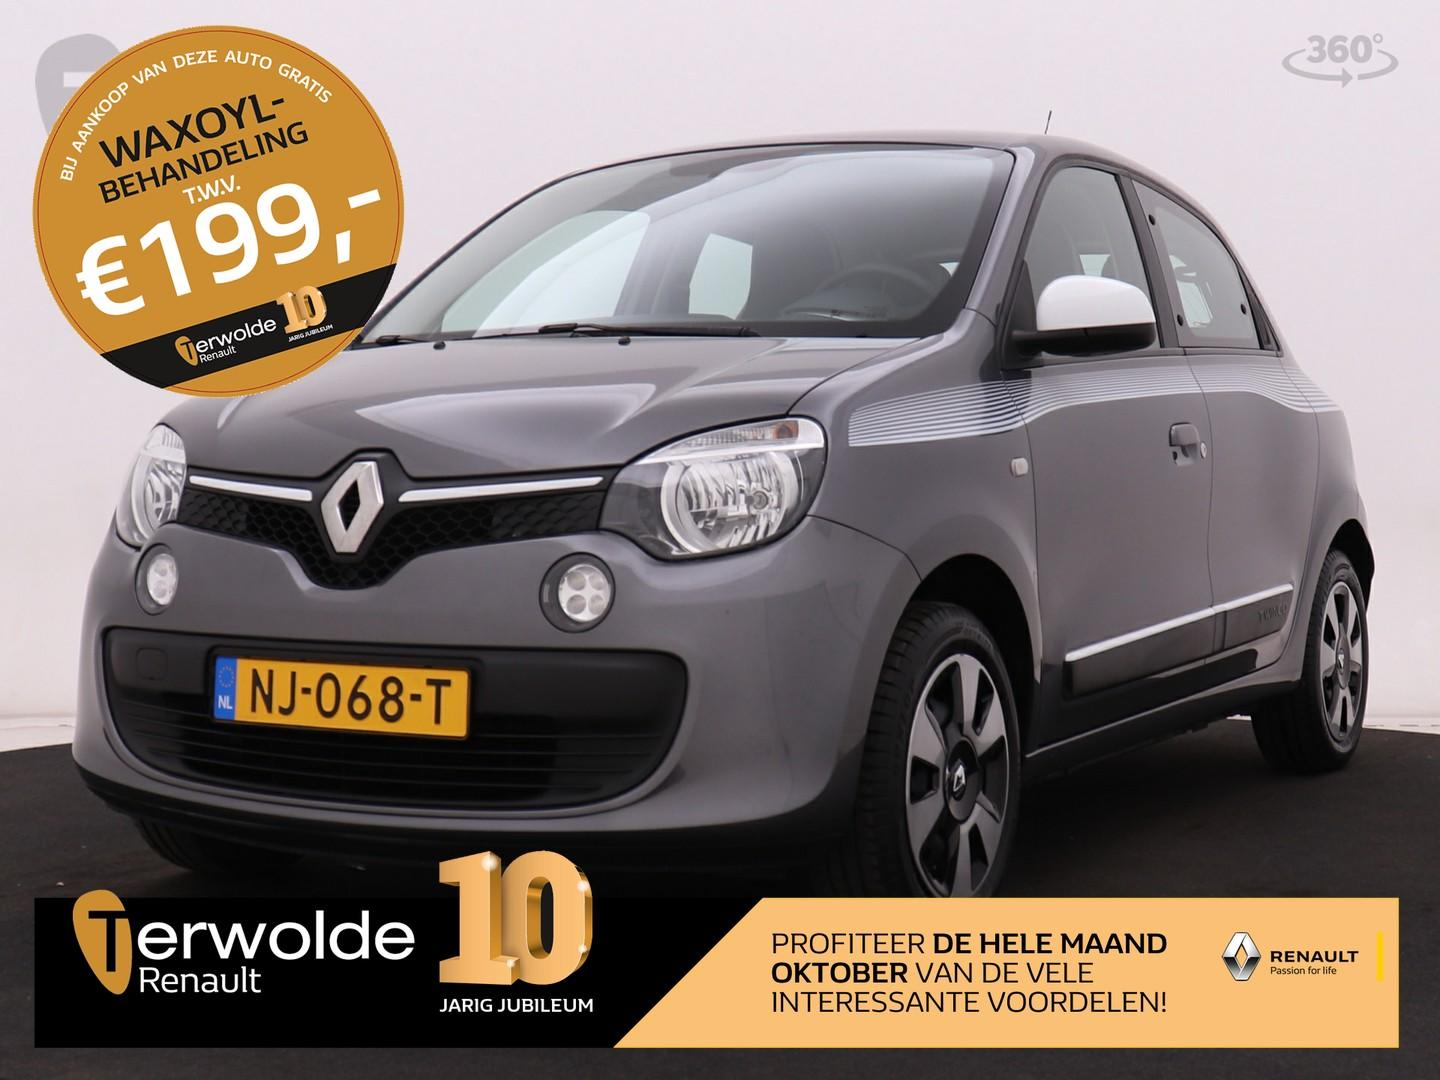 Renault Twingo 1.0 sce collection airco i centrale vergrendeling